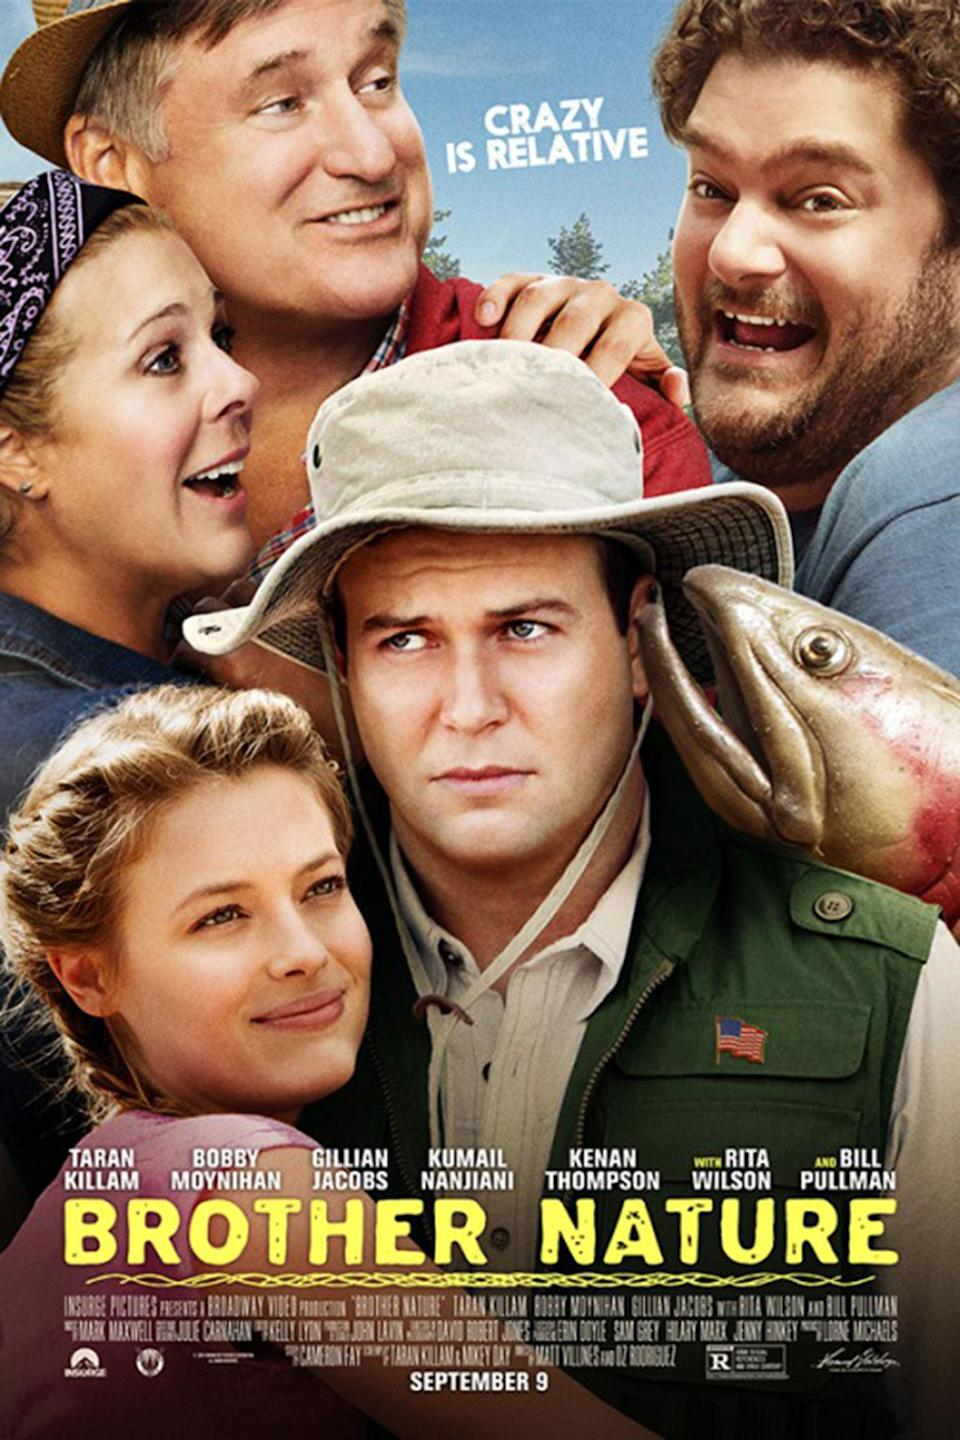 <p>'Brother Nature' never got a UK release, and judging by this awful poster, we had a narrow escape. We <i>think</i> that's Bill Pullman in the top left corner. (Credit: Insurge Pictures) </p>